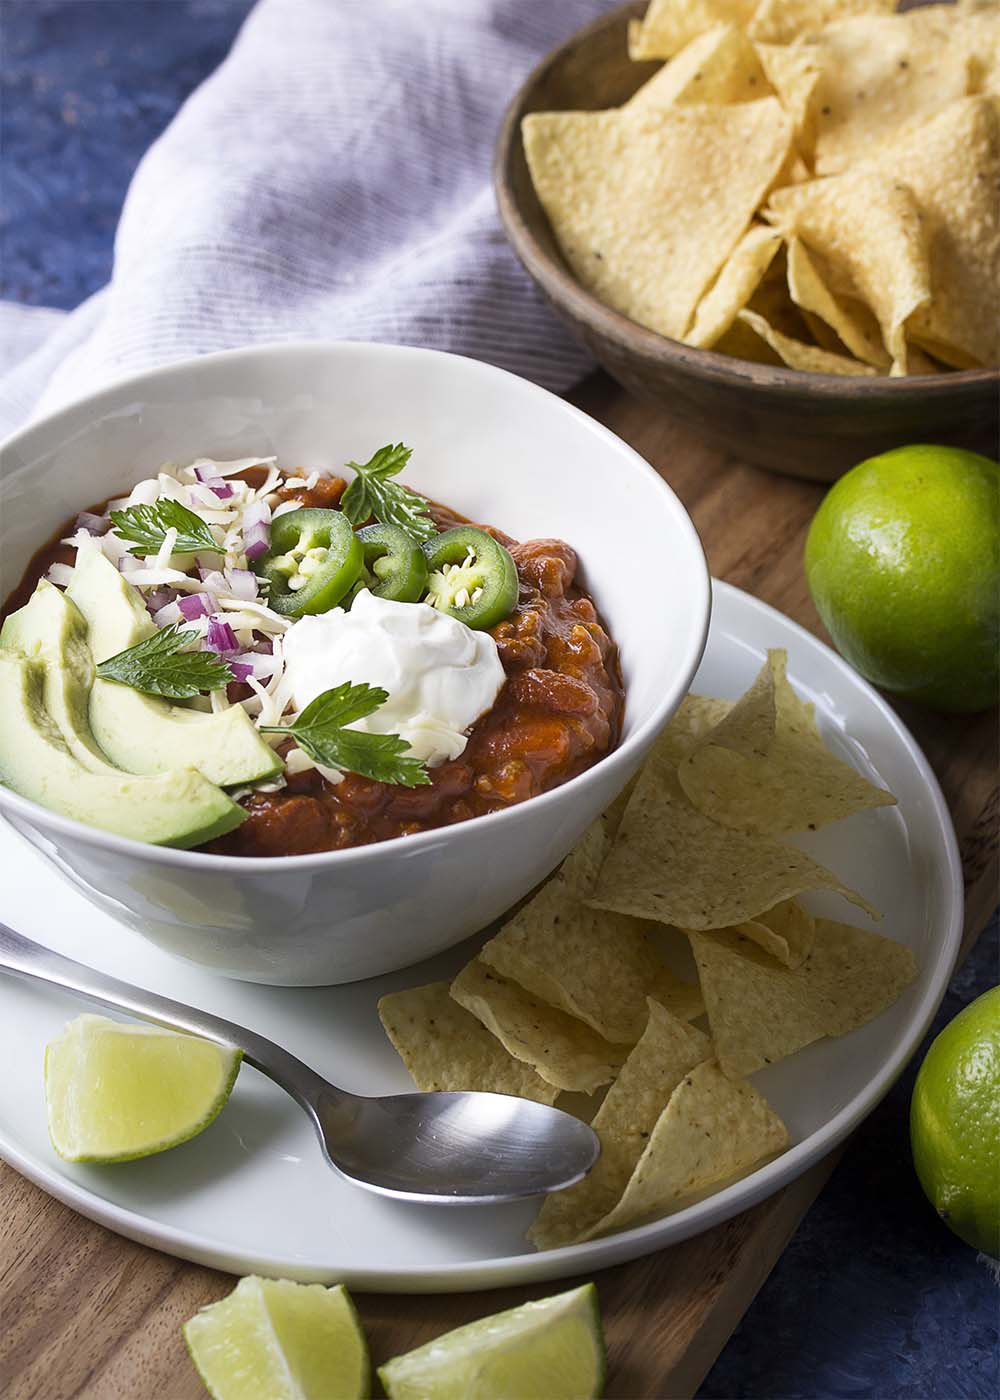 A bowl of loaded ground beef chili set out with tortilla chips and all ready to be enjoyed.